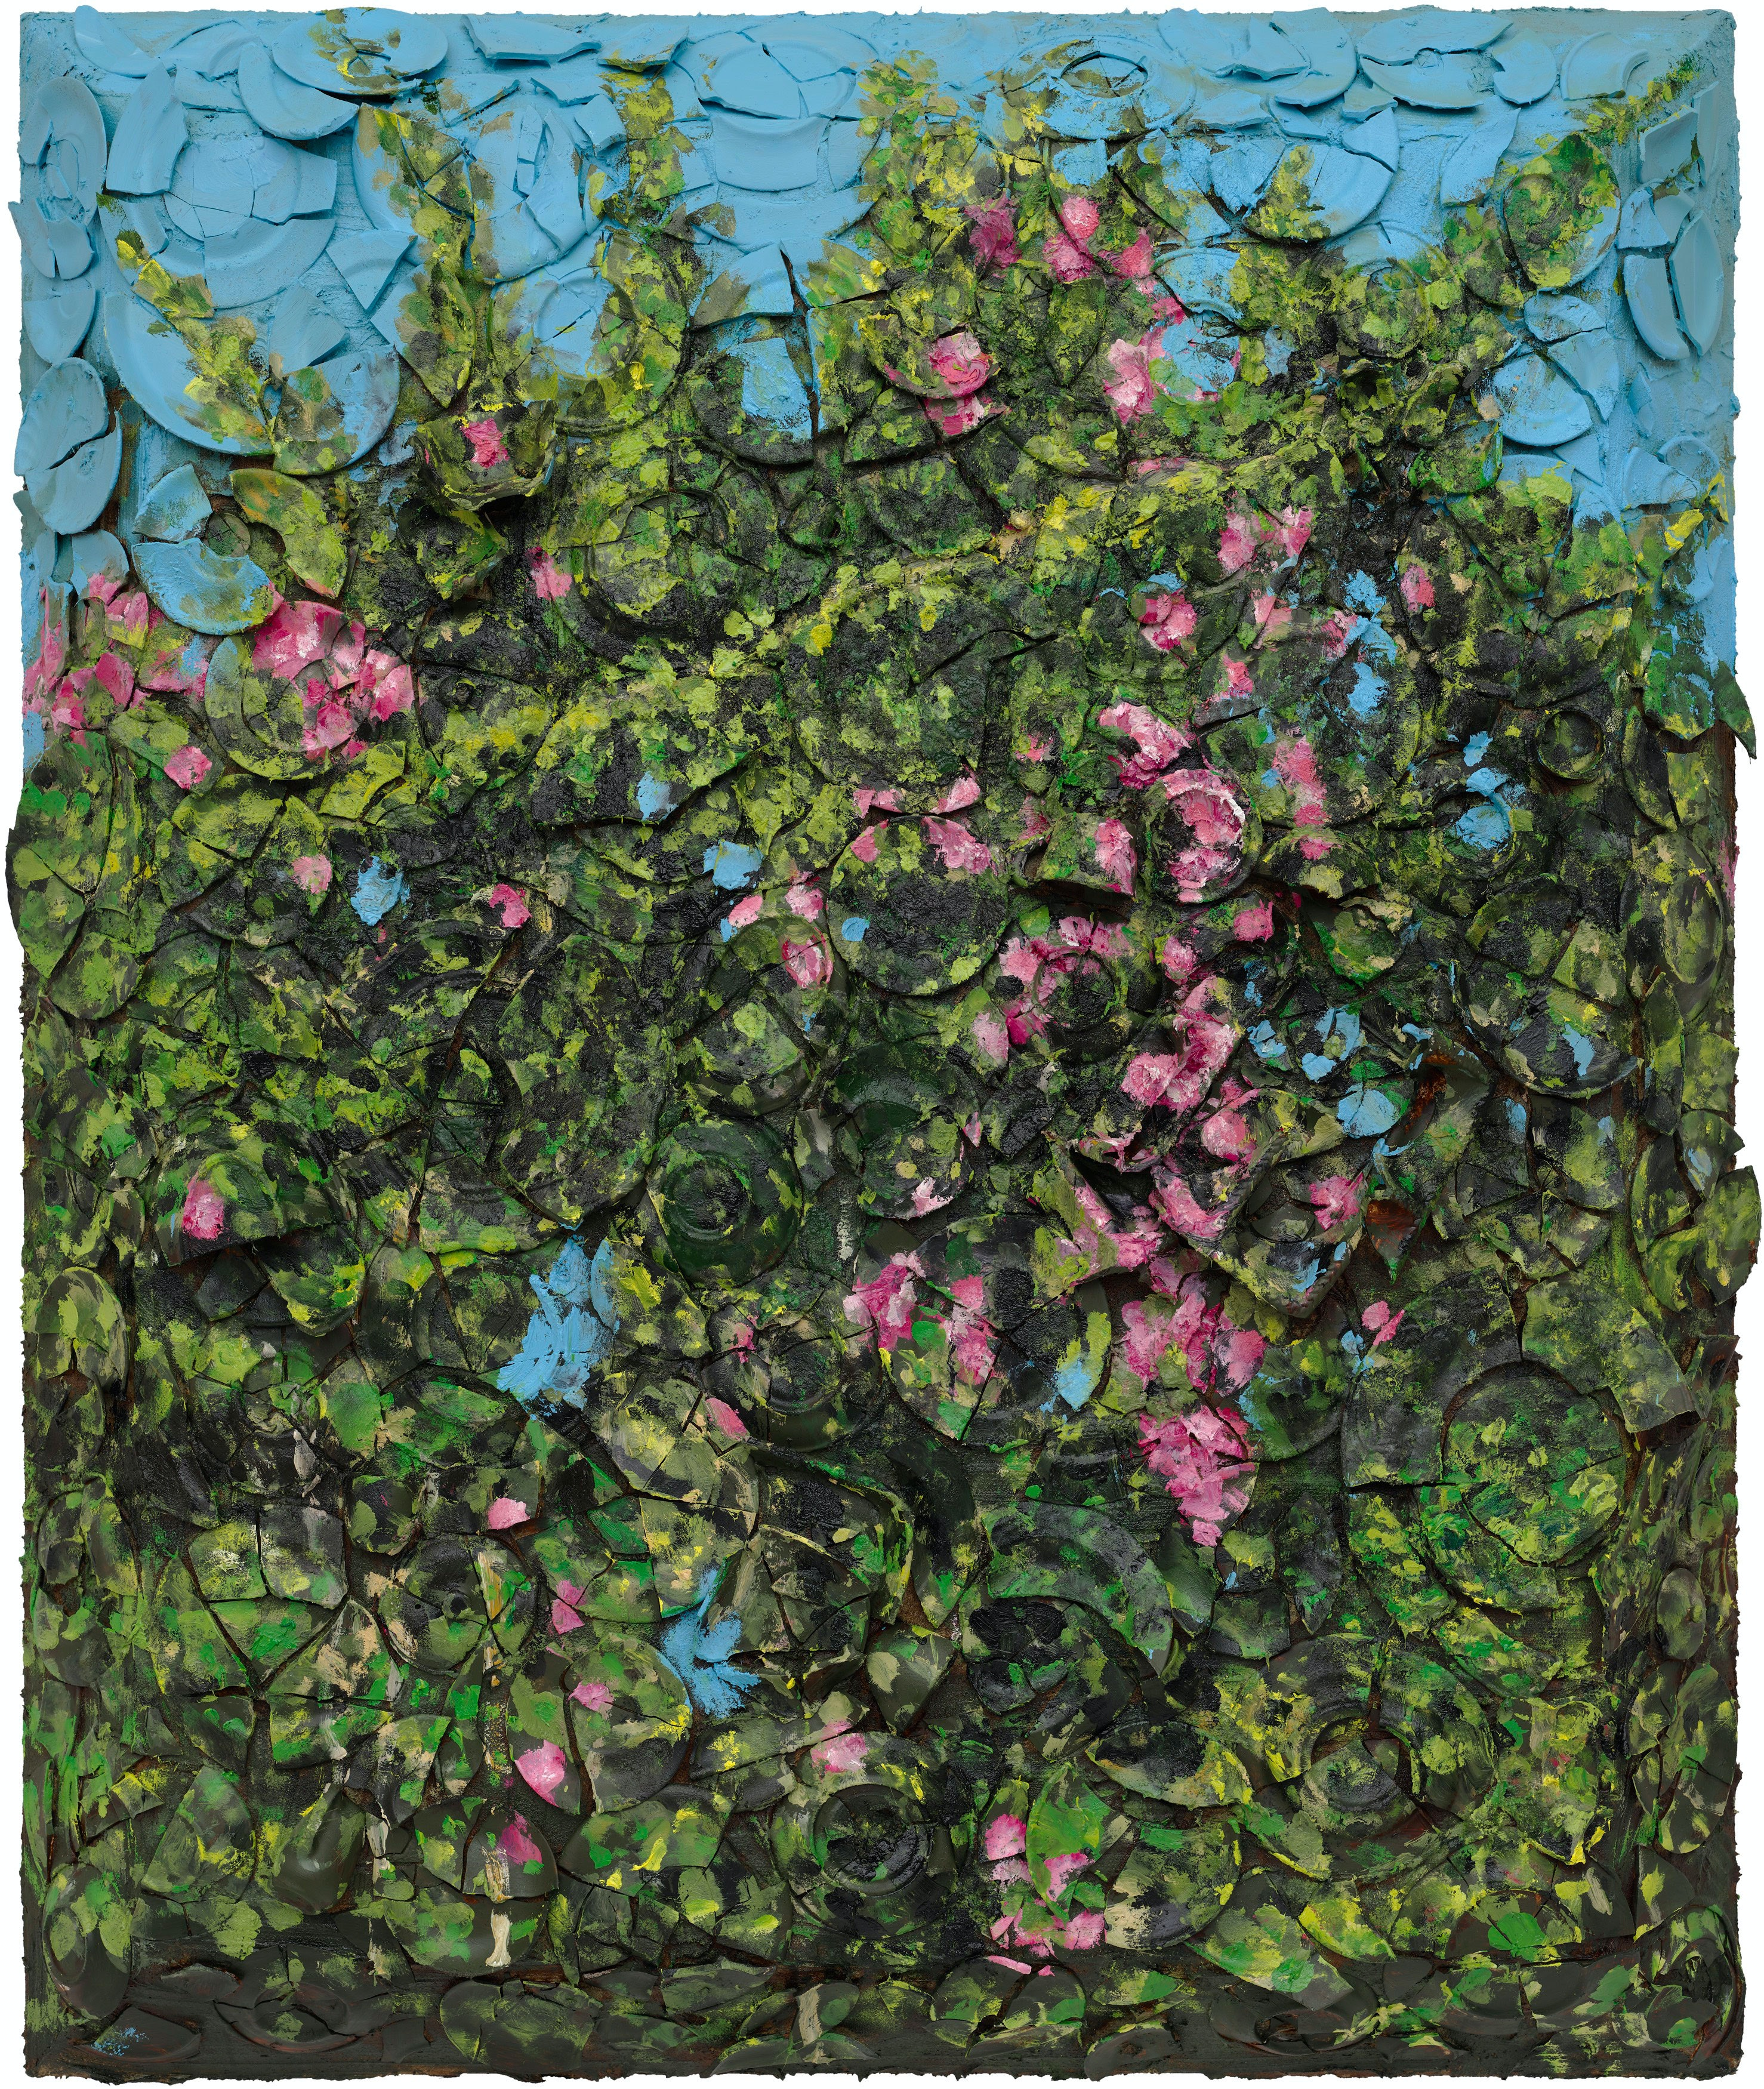 Julian Schnabel, <em>Victory at S-chanf I</em>, 2021. Oil, plates and bondo on wood, 72 x 60 inches. © Julian Schnabel. Courtesy the artist and Vito Schnabel Gallery. Photo: Tom Powel Imaging.